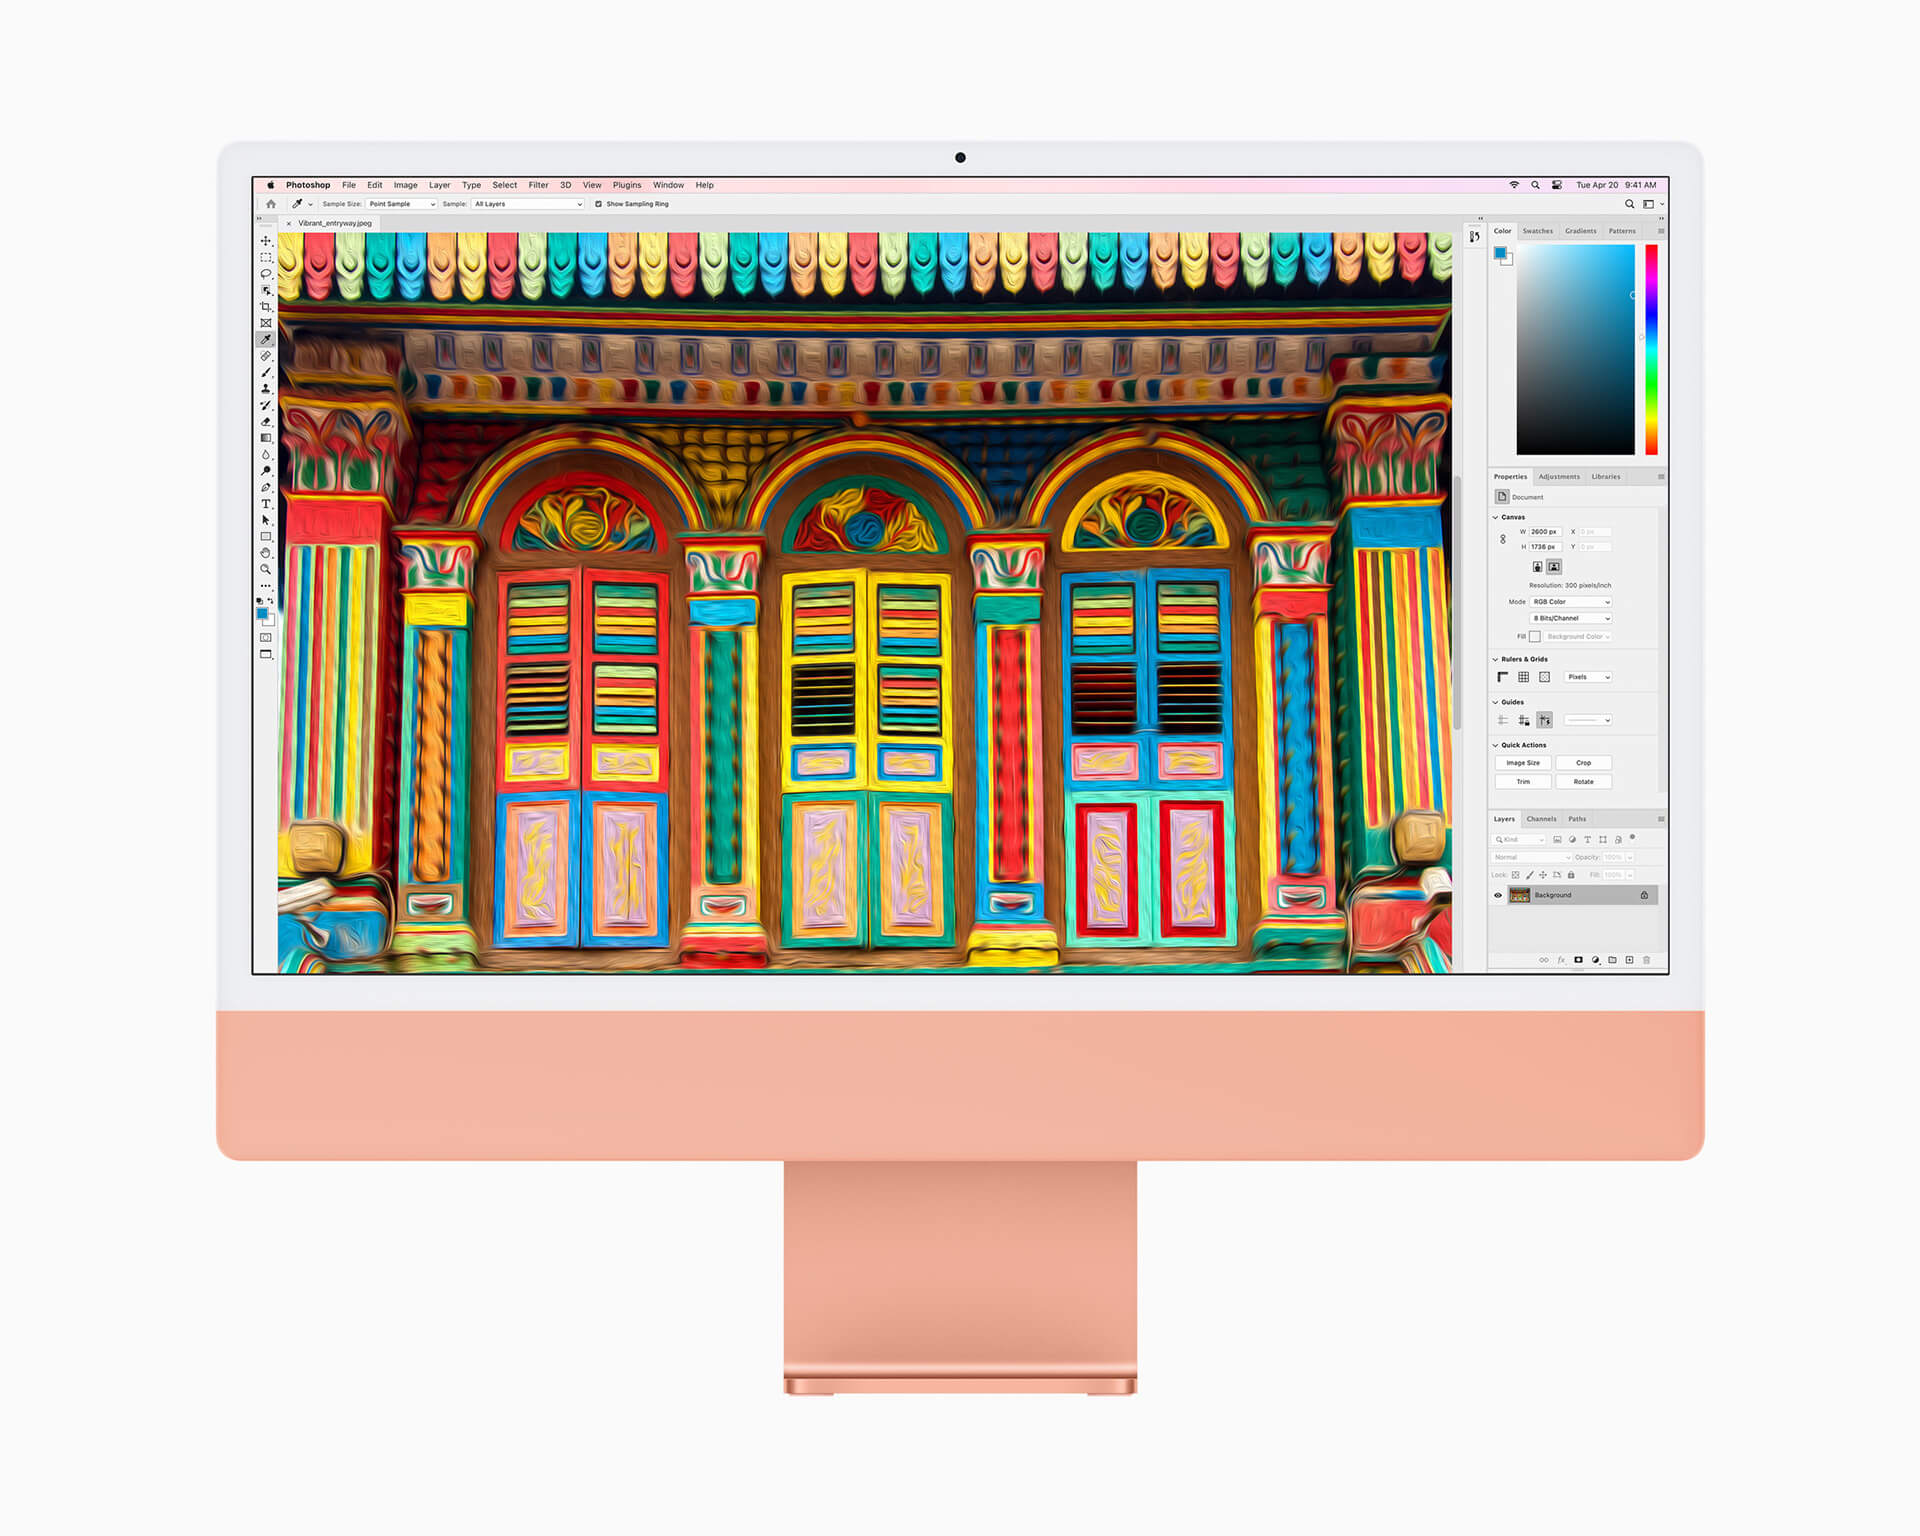 This is in line with Apple's sustainable business practices and highly energy efficient performance standards | iMac by Apple Inc. | STIRworld